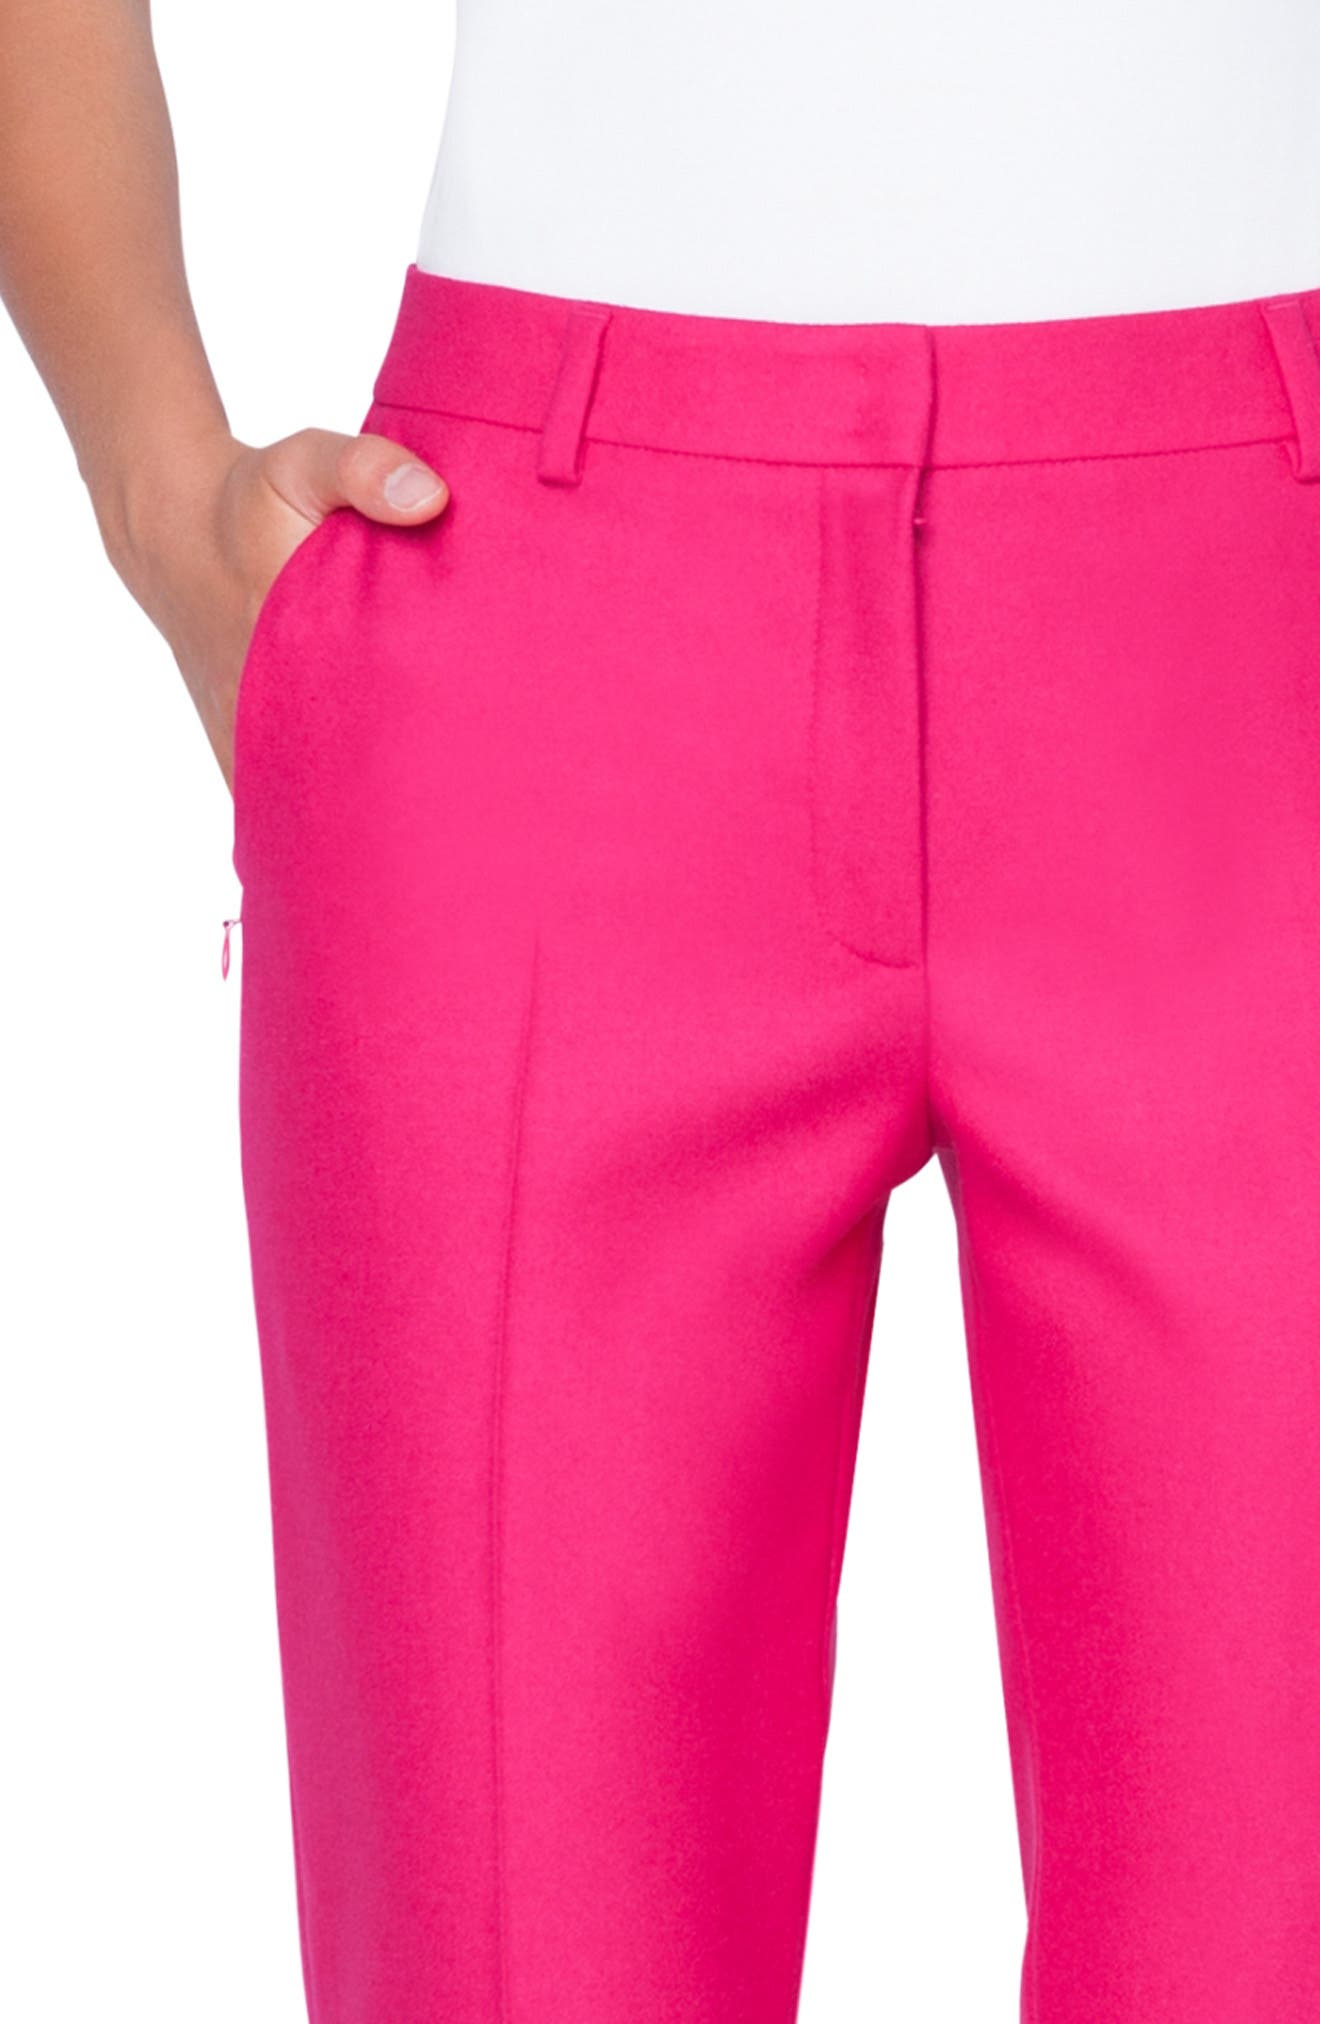 Melvin Stretch Wool Flannel Pants,                             Alternate thumbnail 3, color,                             067 PINK